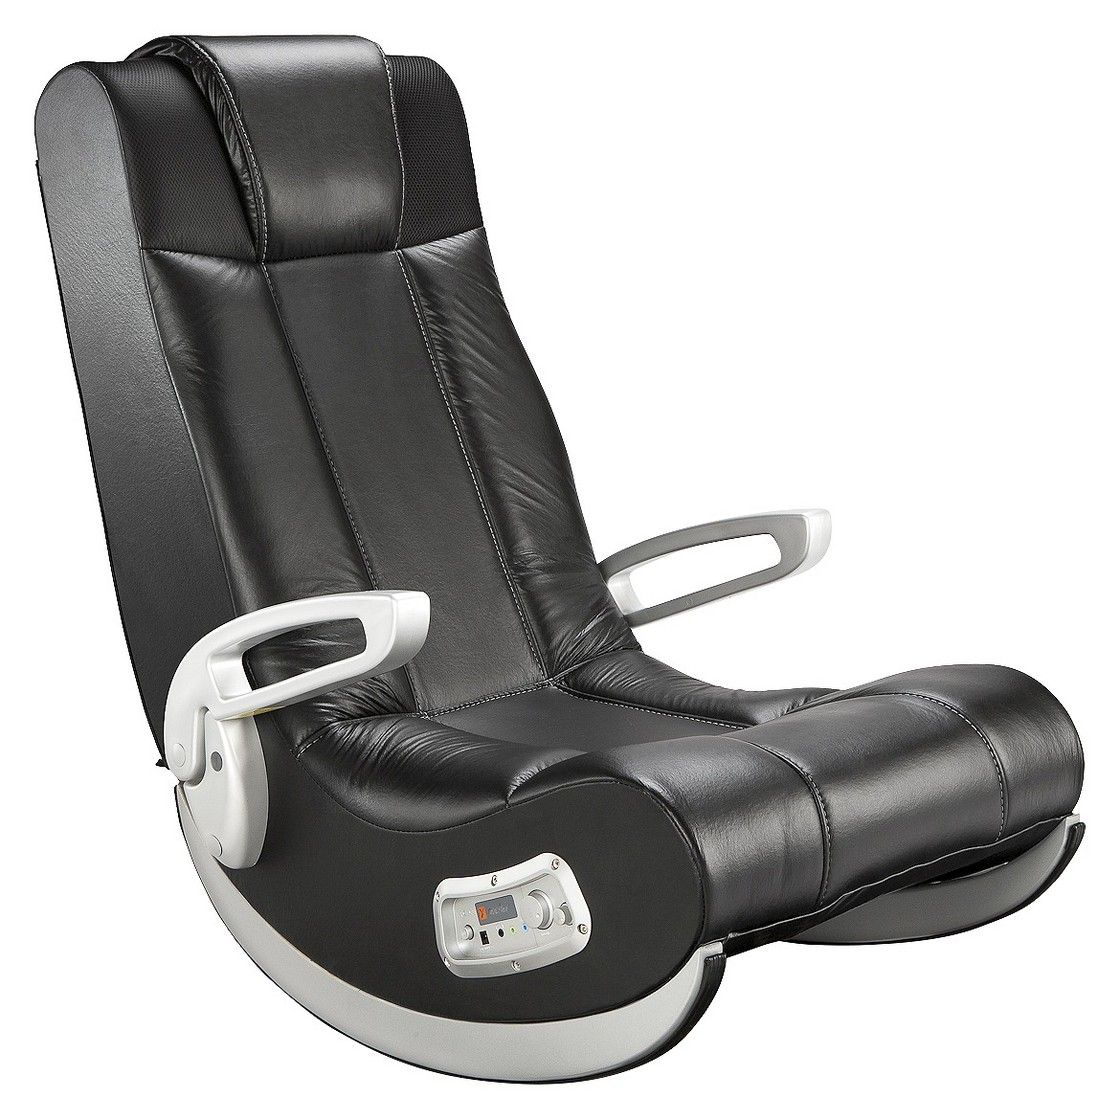 ACE BAYOU XRocker Gaming Chair Black Kiddos